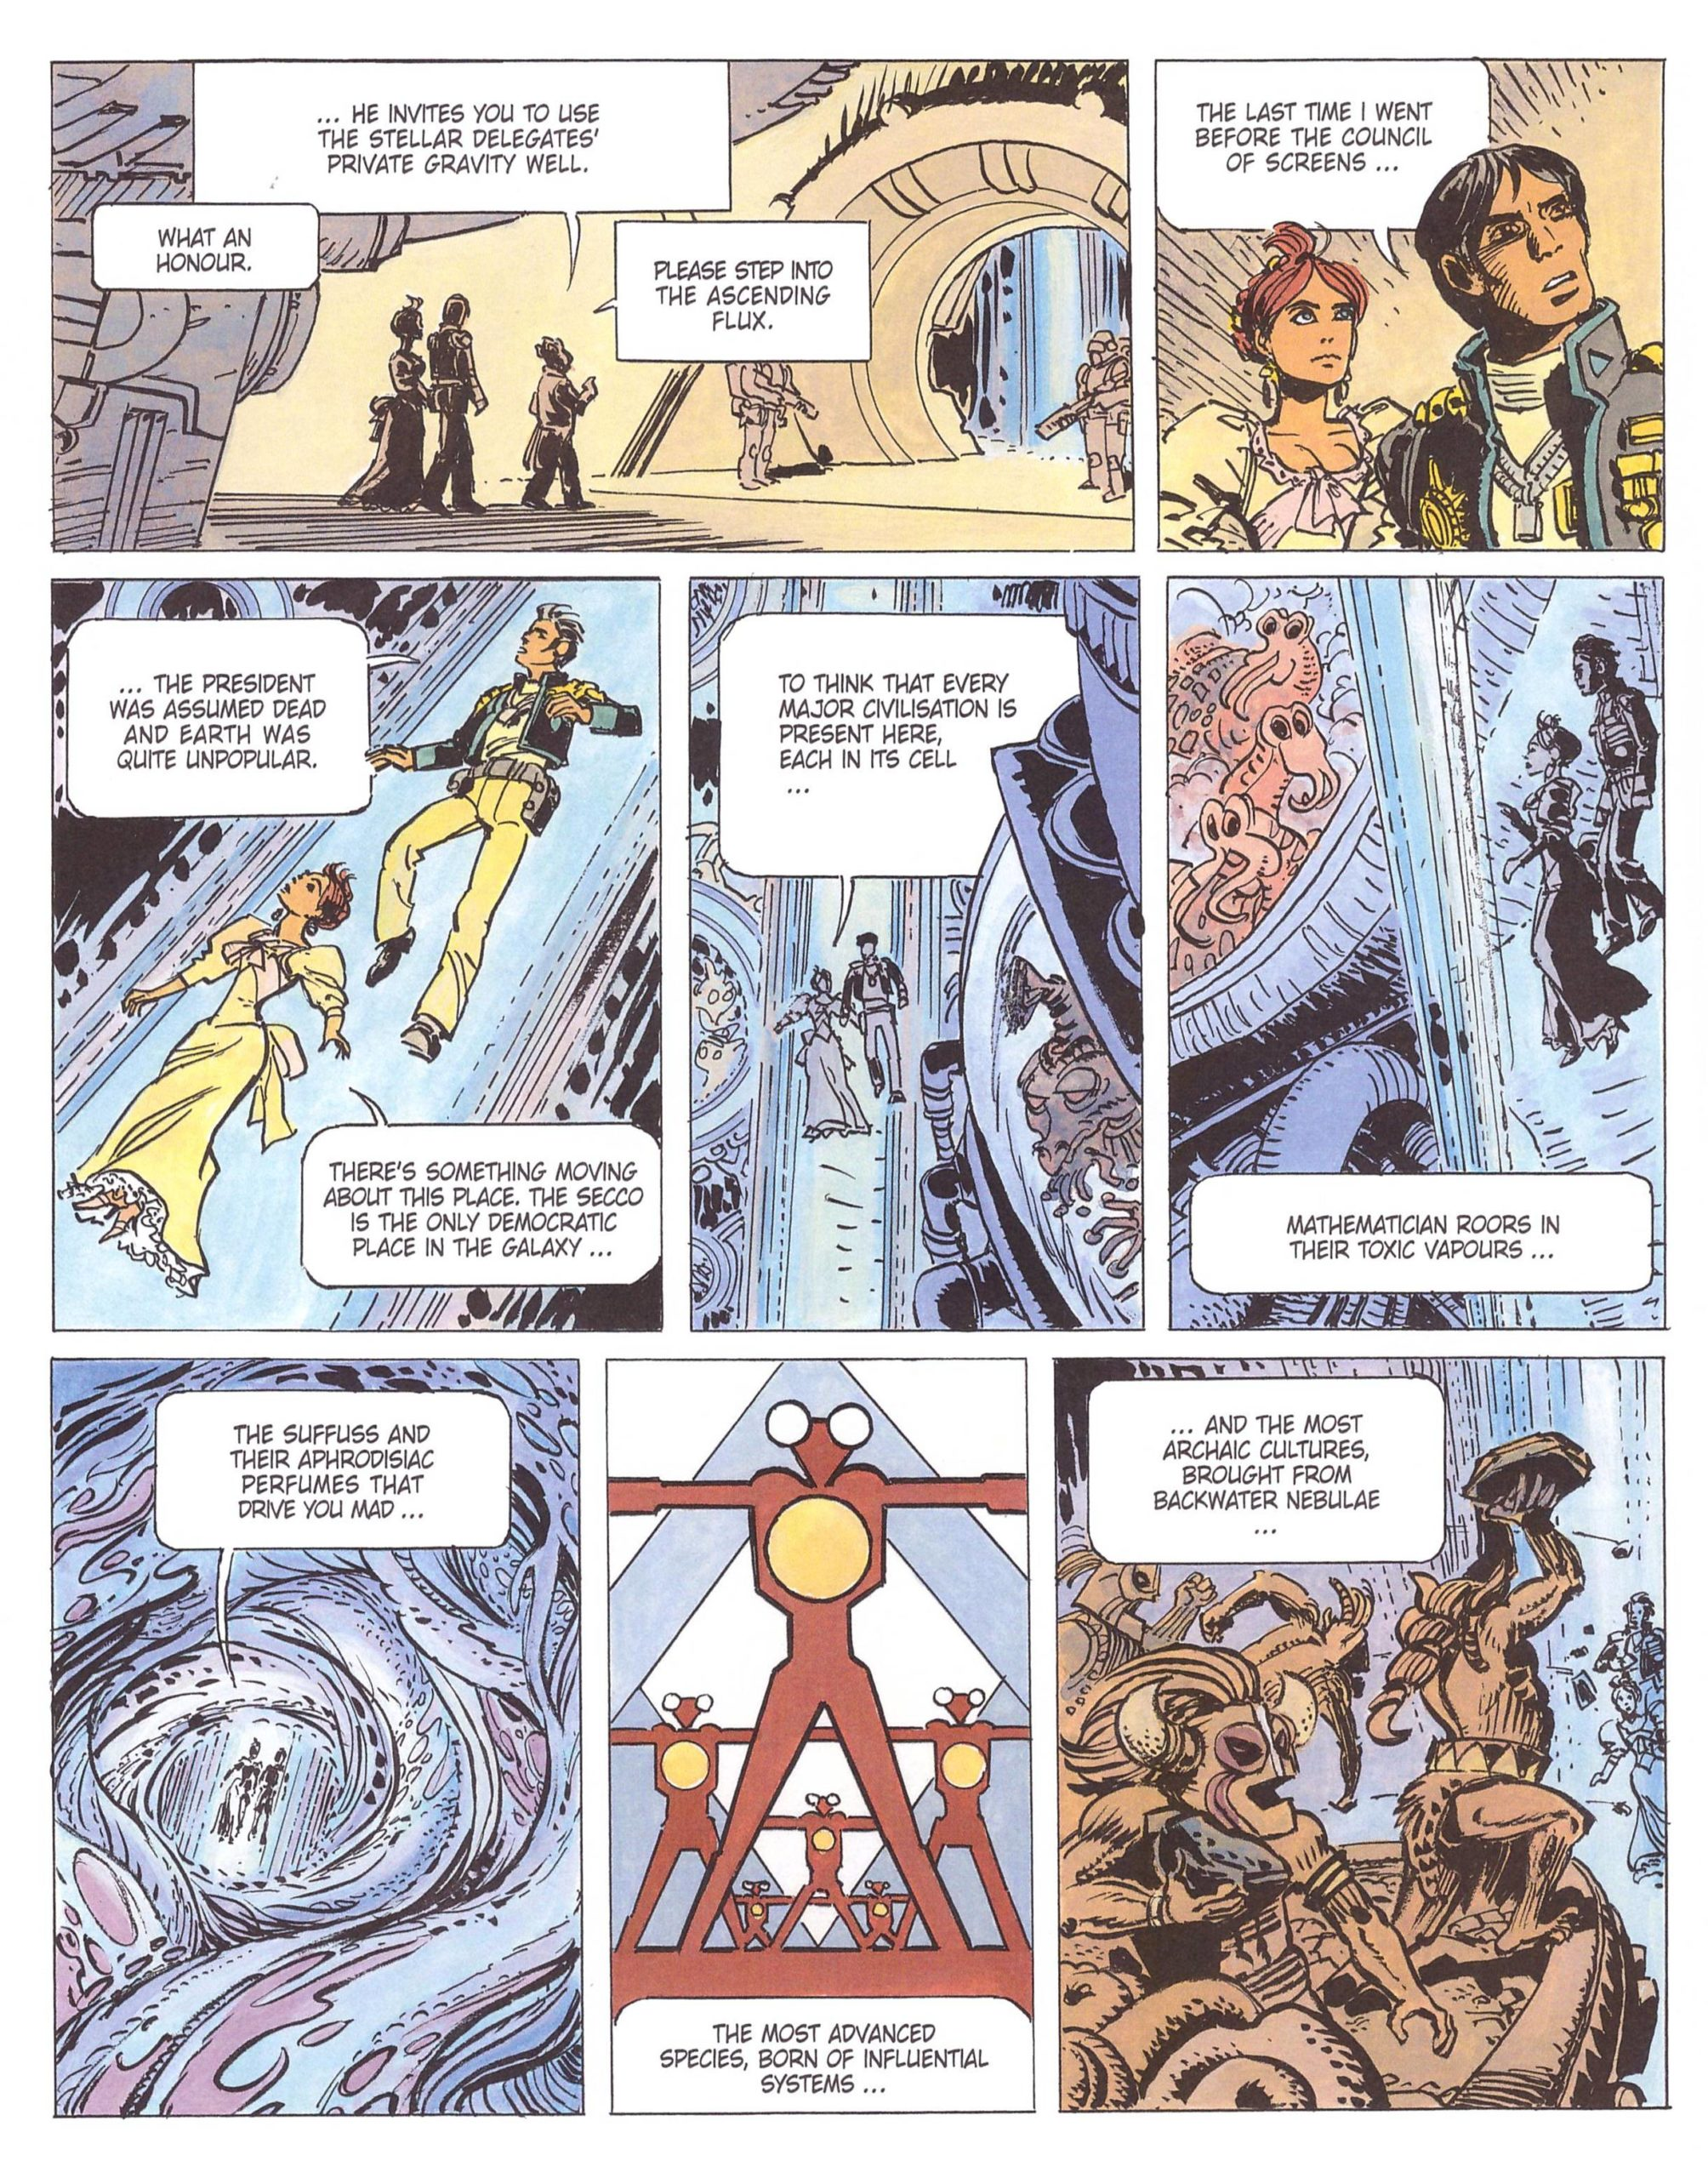 Valerian and Laureline The Future is Waiting review